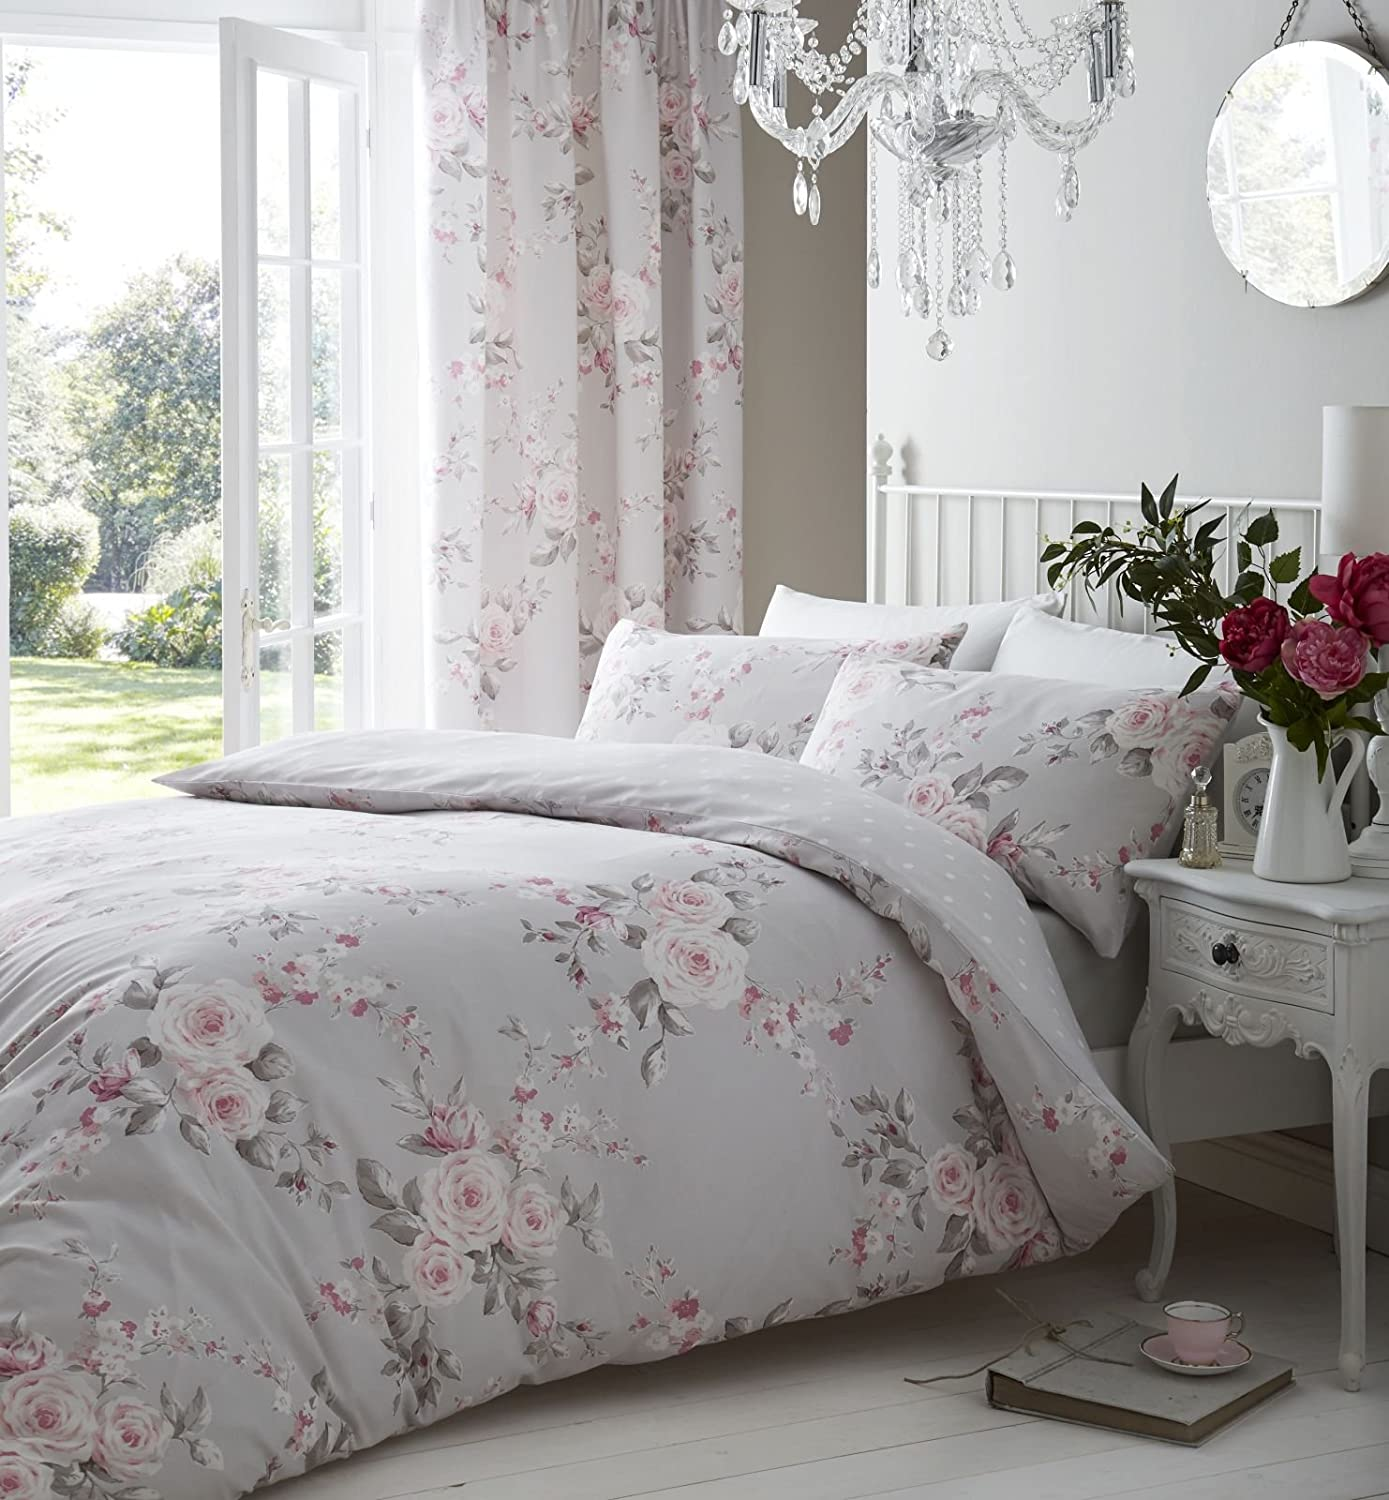 Catherine Lansfield Canterbury Easy Care Double Duvet Set Grey Turner Bianca BD/28239/W/DQS/GY